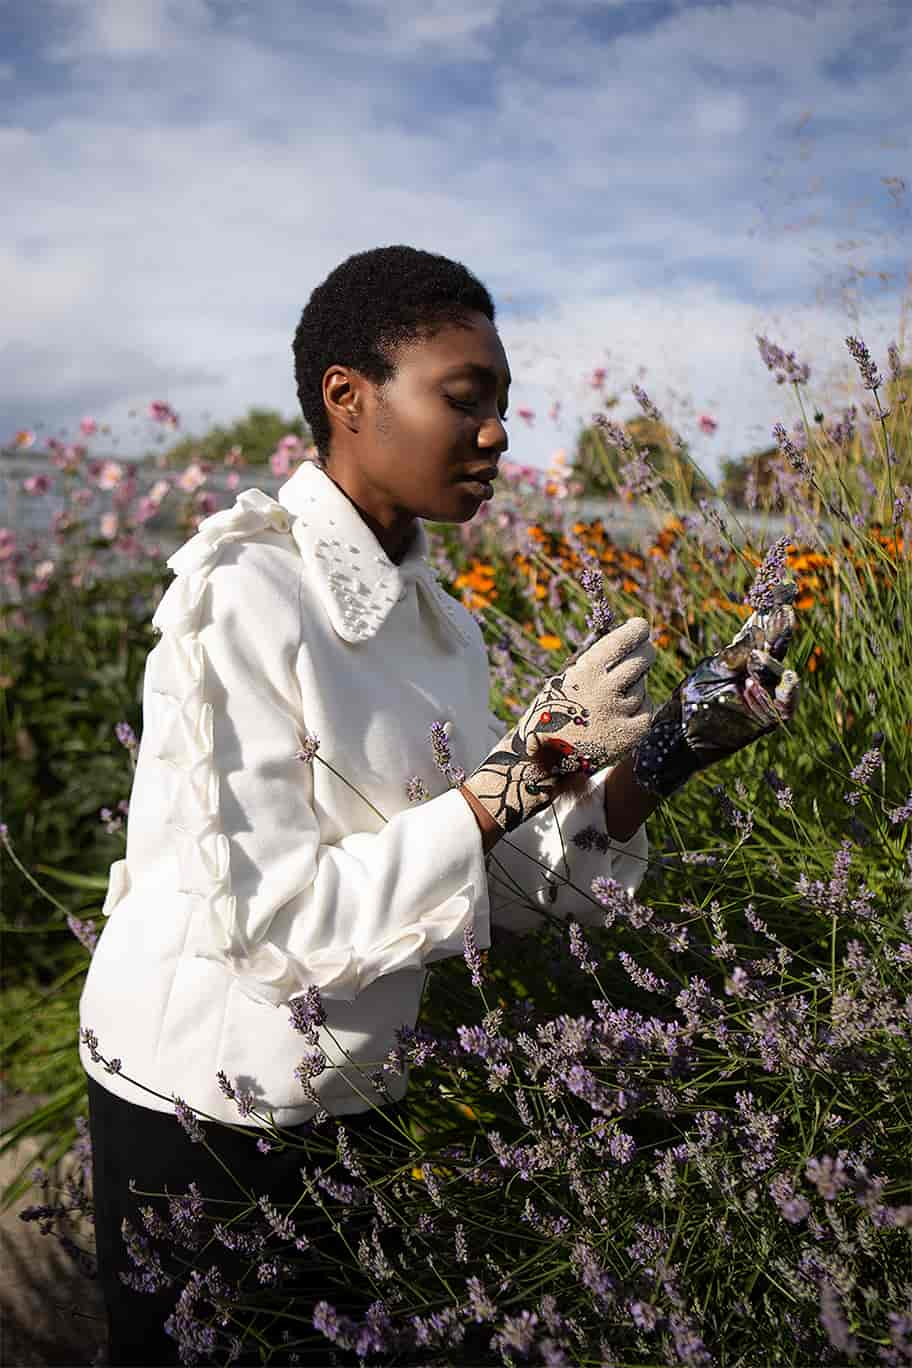 VALDONE Au - Sustainable luxury fashion. Editorial of the Alia coat with model surrounded by the lavender flowers